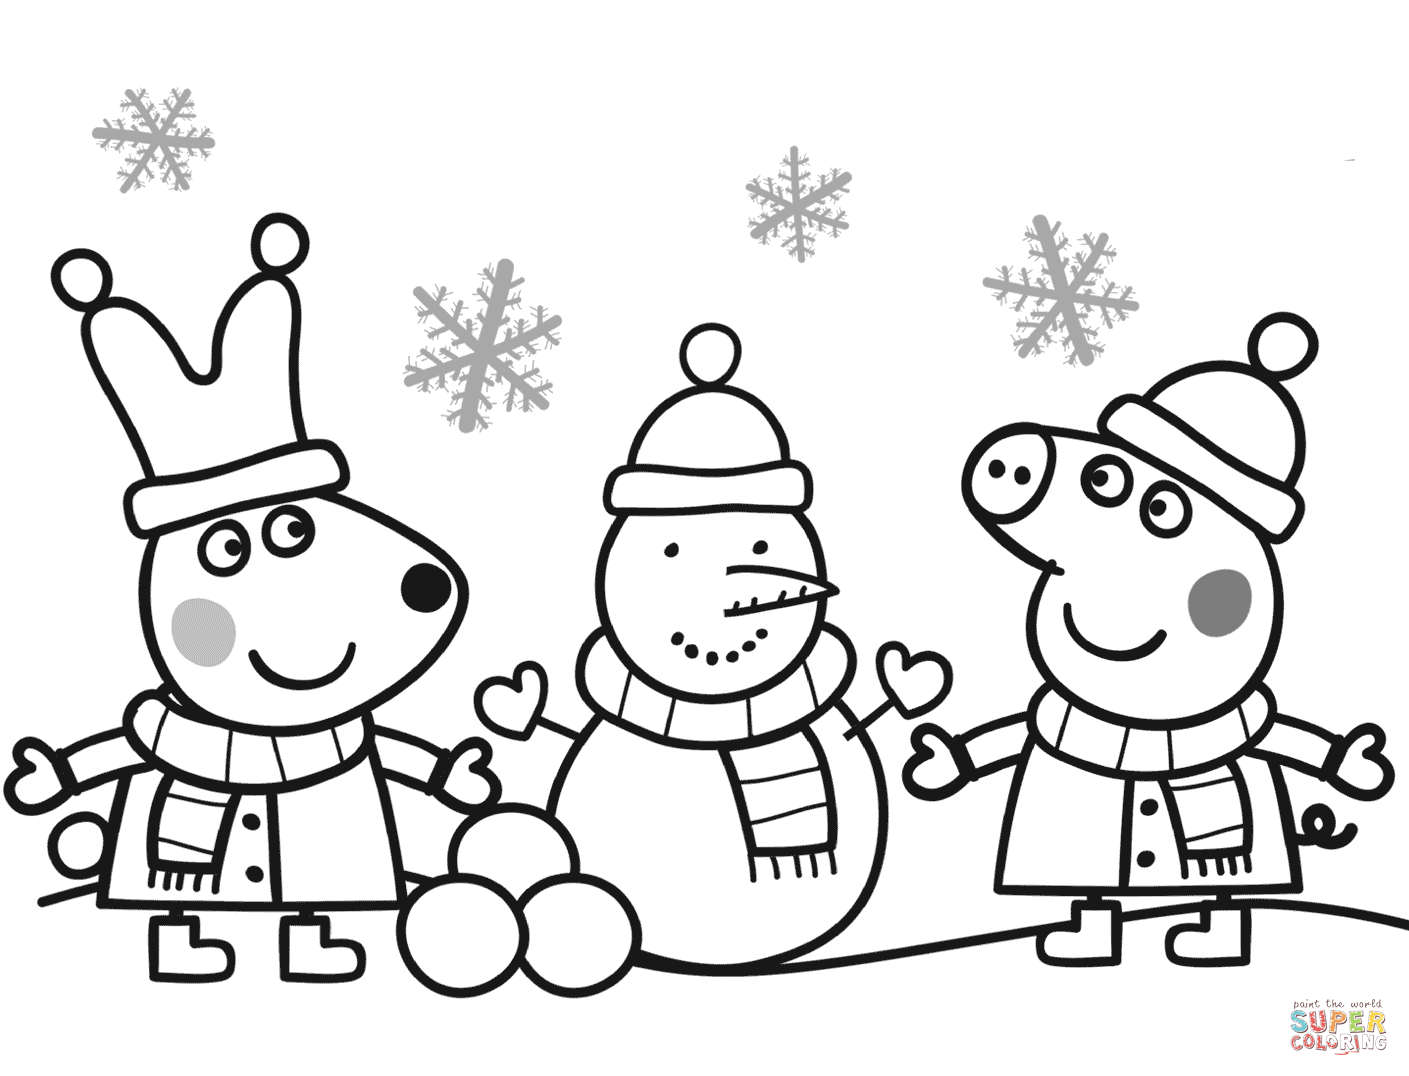 peppa pig colouring pages online peppa pig christmas coloring pages at getdrawings free online peppa colouring pig pages